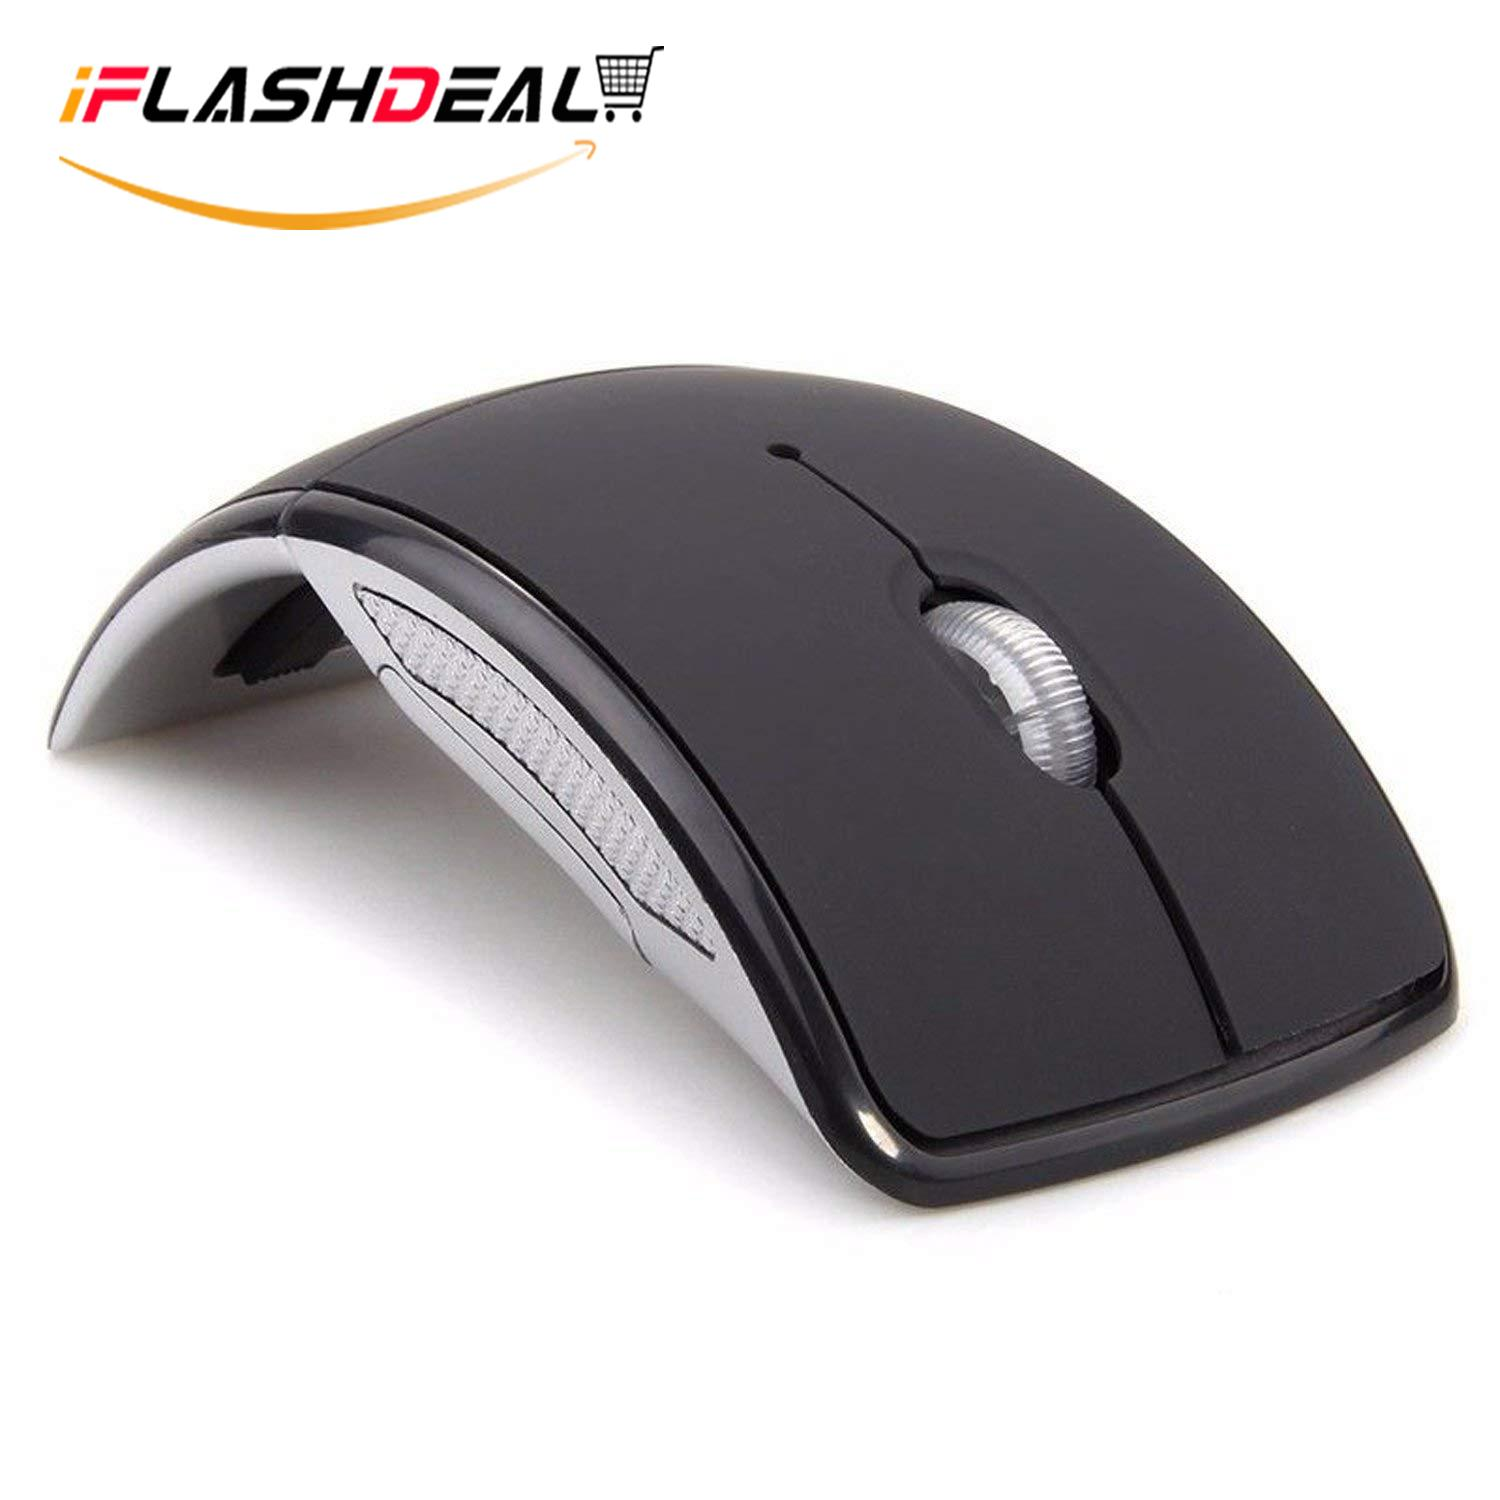 iFlashDeal 2.4GHz Wireless Folding Mouse Foldable Mice Arc Optical Mouse with USB Receiver for PC Laptop MacBook Malaysia